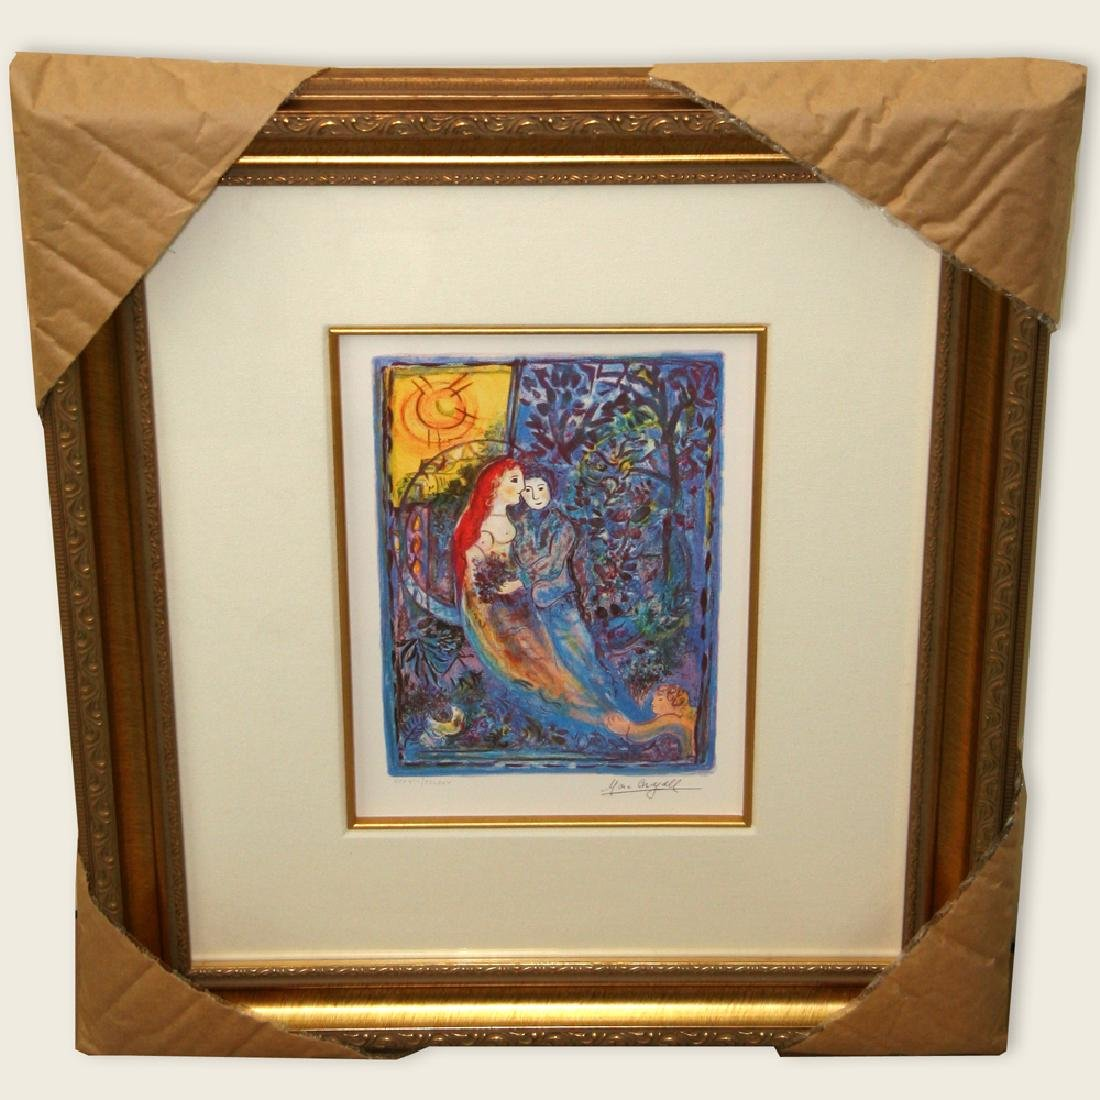 Chagall (After) 'The Wedding' Museum Framed Giclee-Ltd